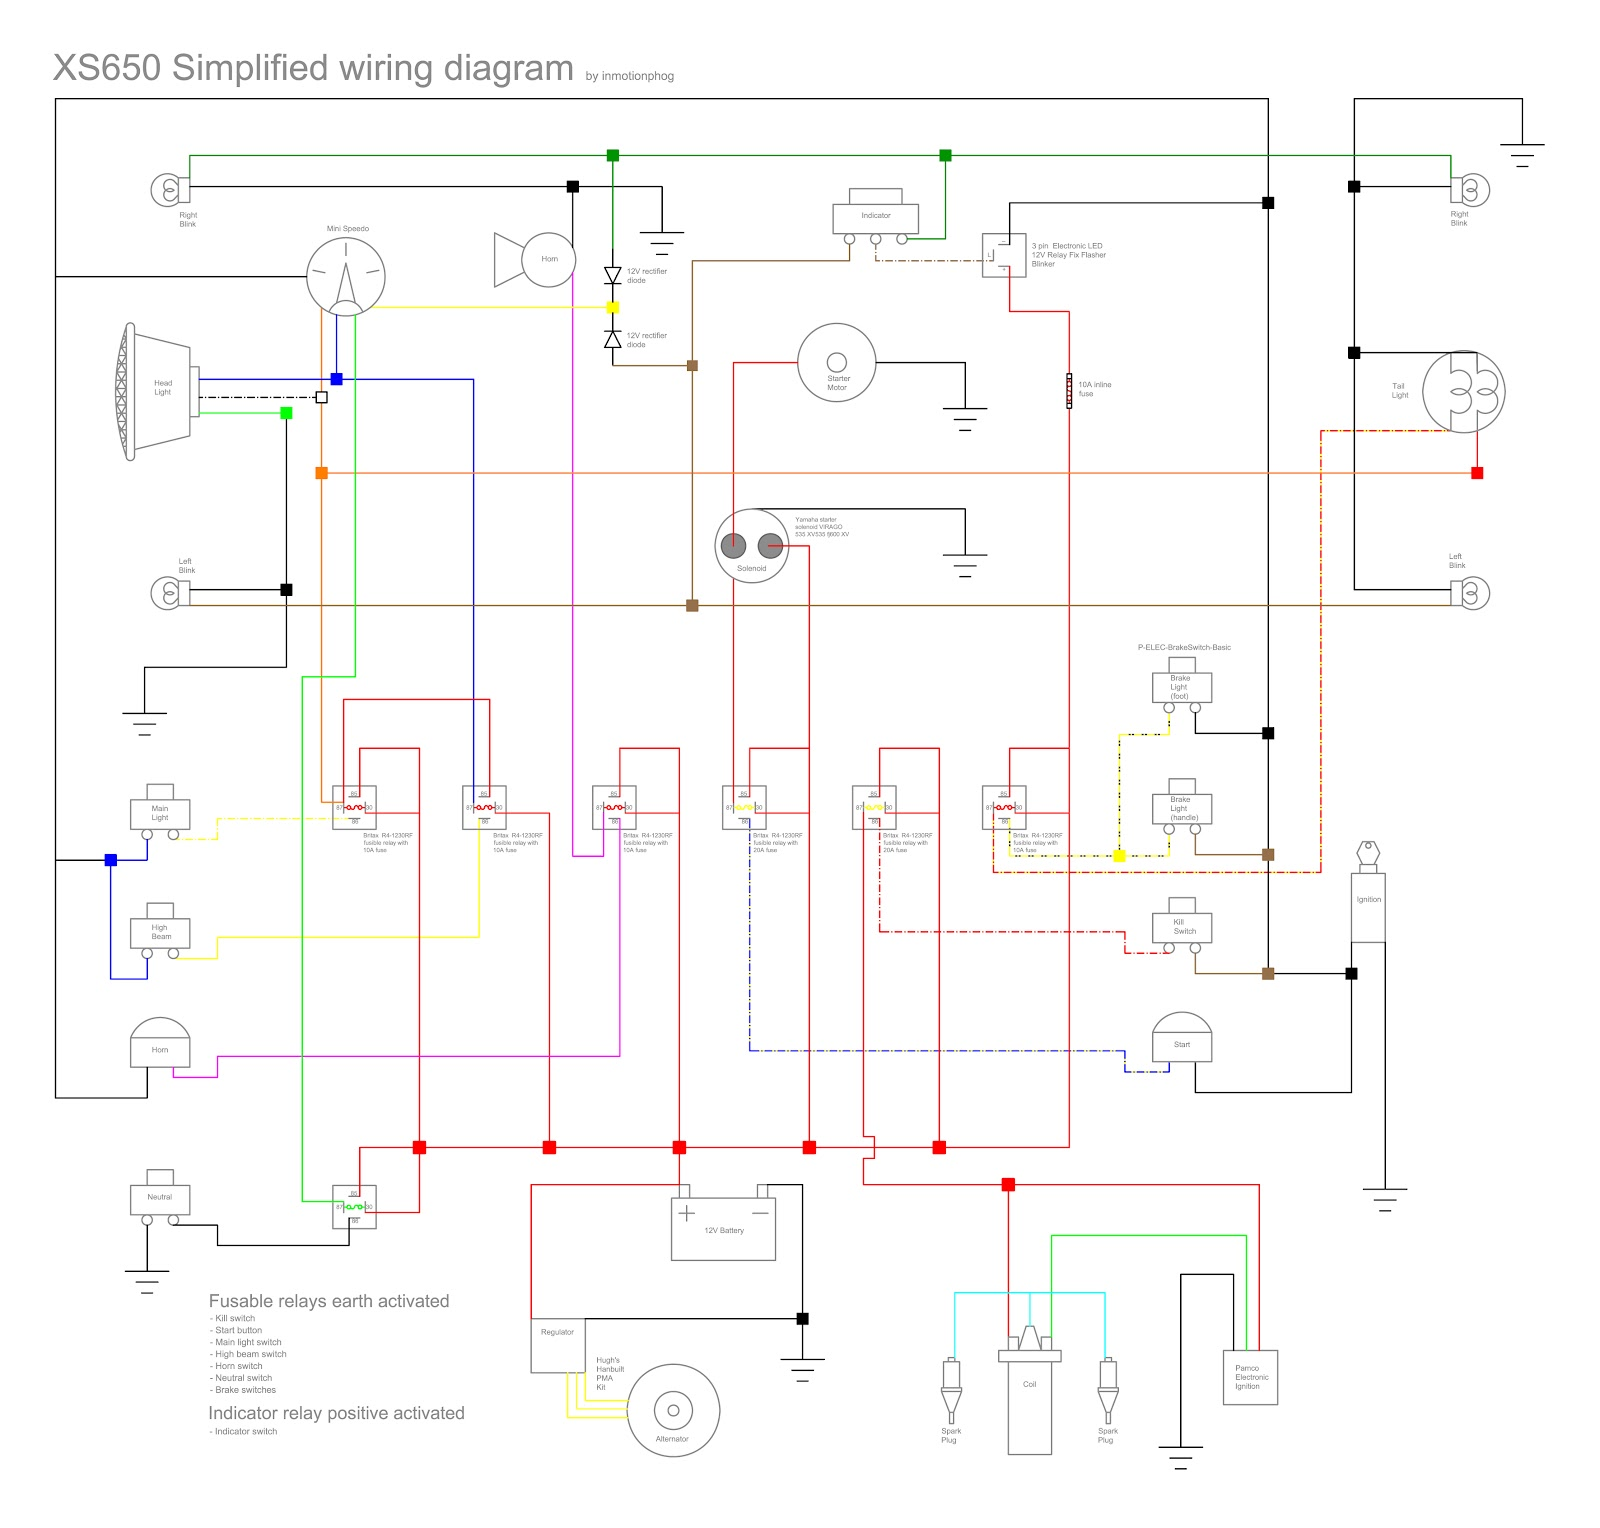 medium resolution of xs650 simplified wiring harness 31 wiring diagram images xj550 simplified wiring xs650 simple wiring harness